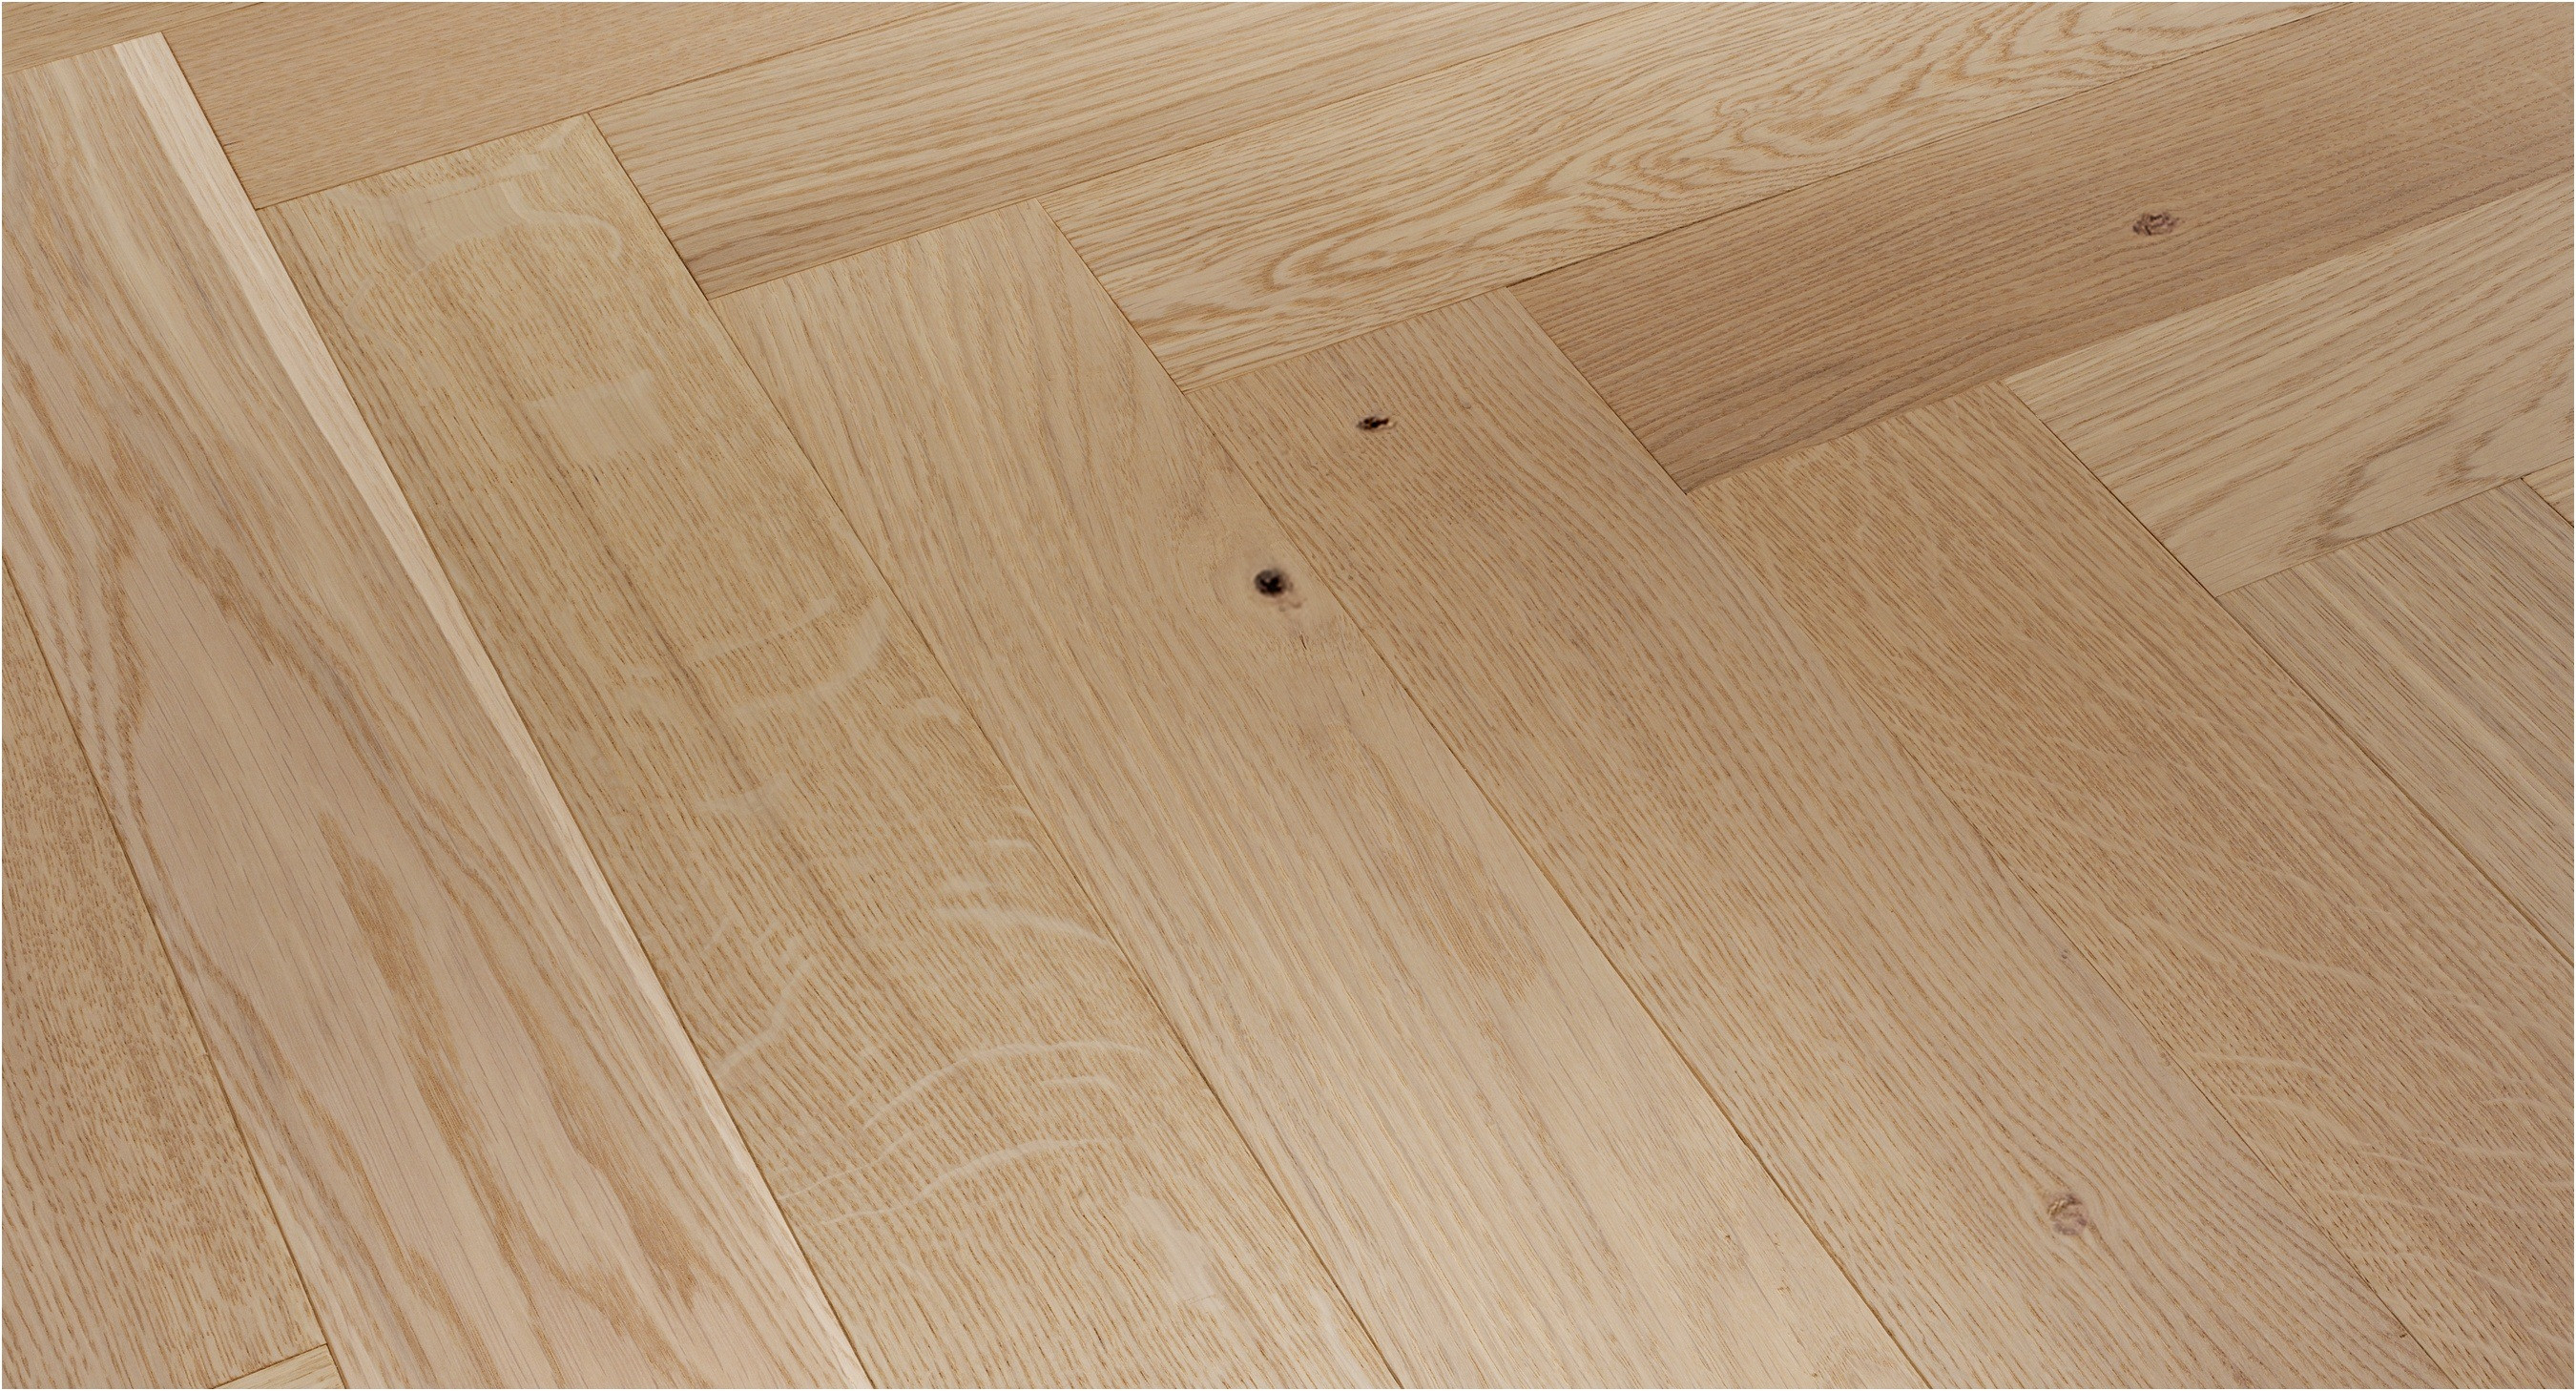 15 Stunning Laminate or Hardwood Flooring which is Better 2021 free download laminate or hardwood flooring which is better of laminate flooring transition luxury the flooring place best place within laminate flooring transition luxury the flooring place best place fo